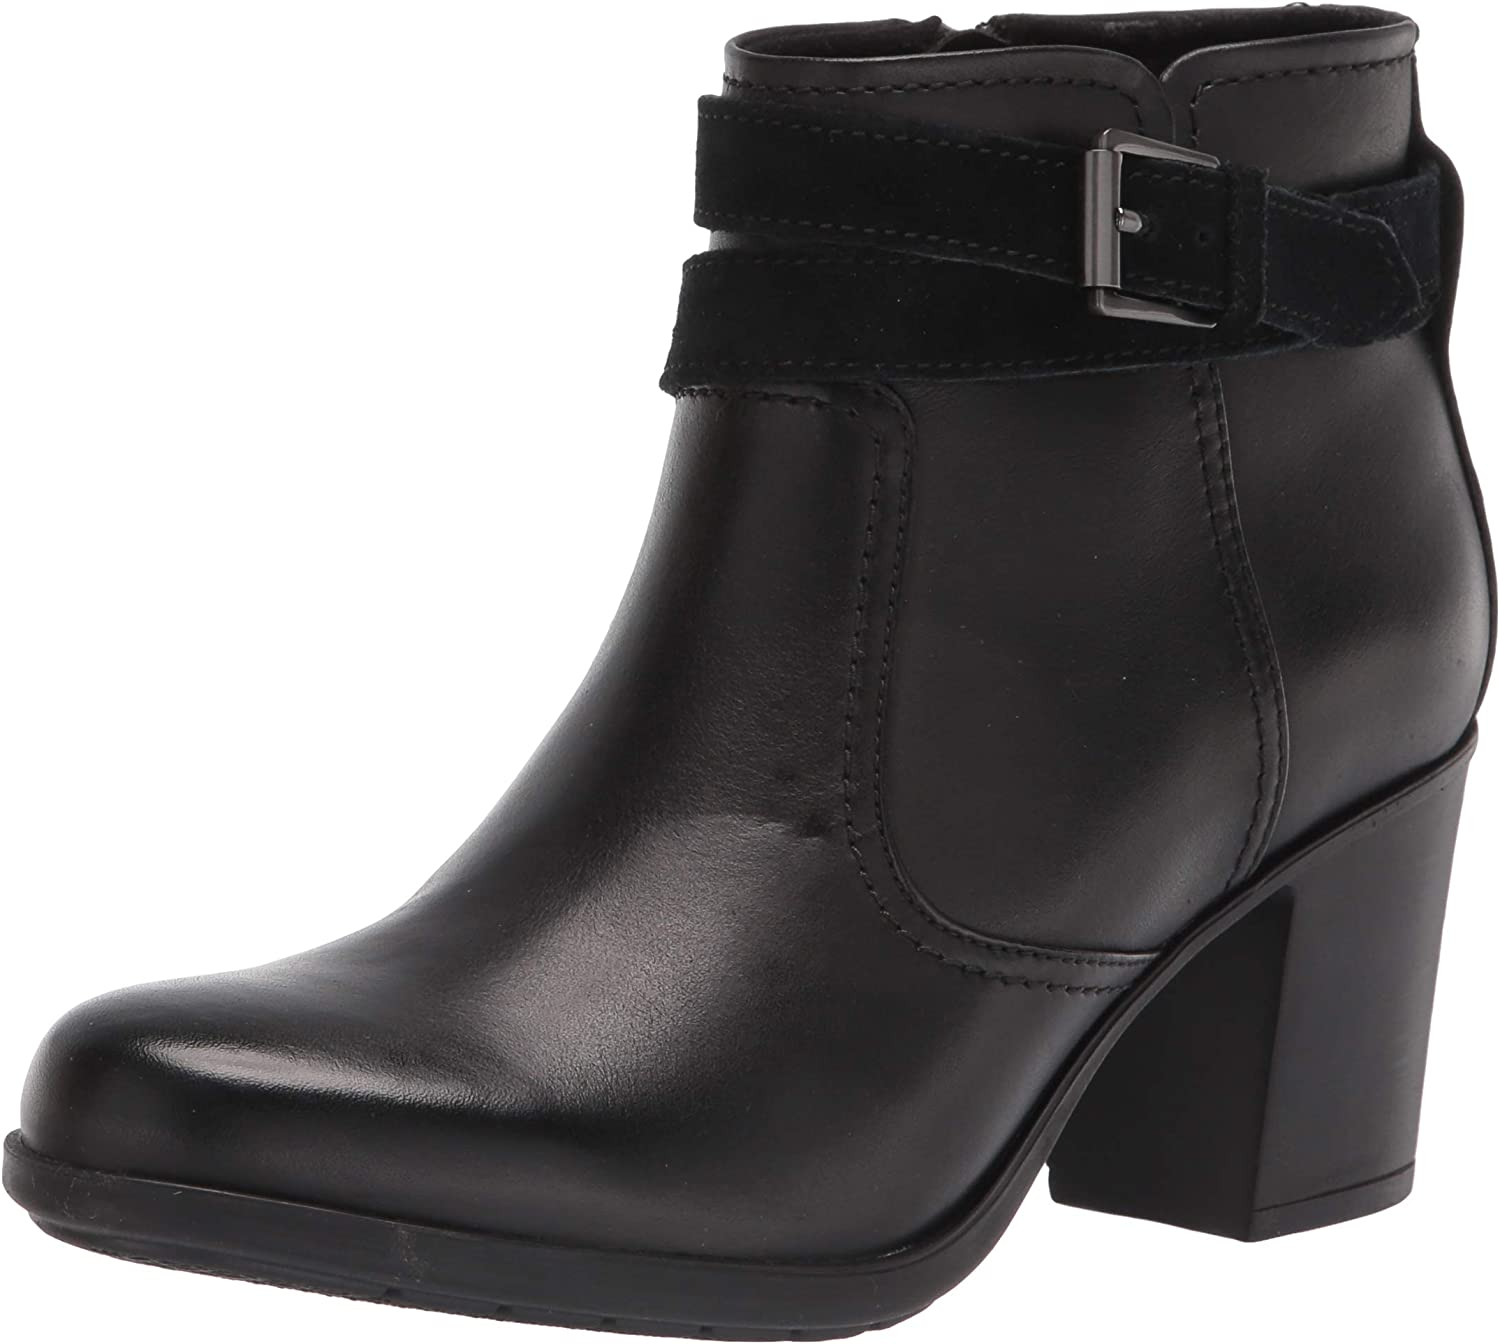 Clarks Women's Diane Peake Ankle Daily bargain sale Black Max 59% OFF Boot Leather Suede Combi